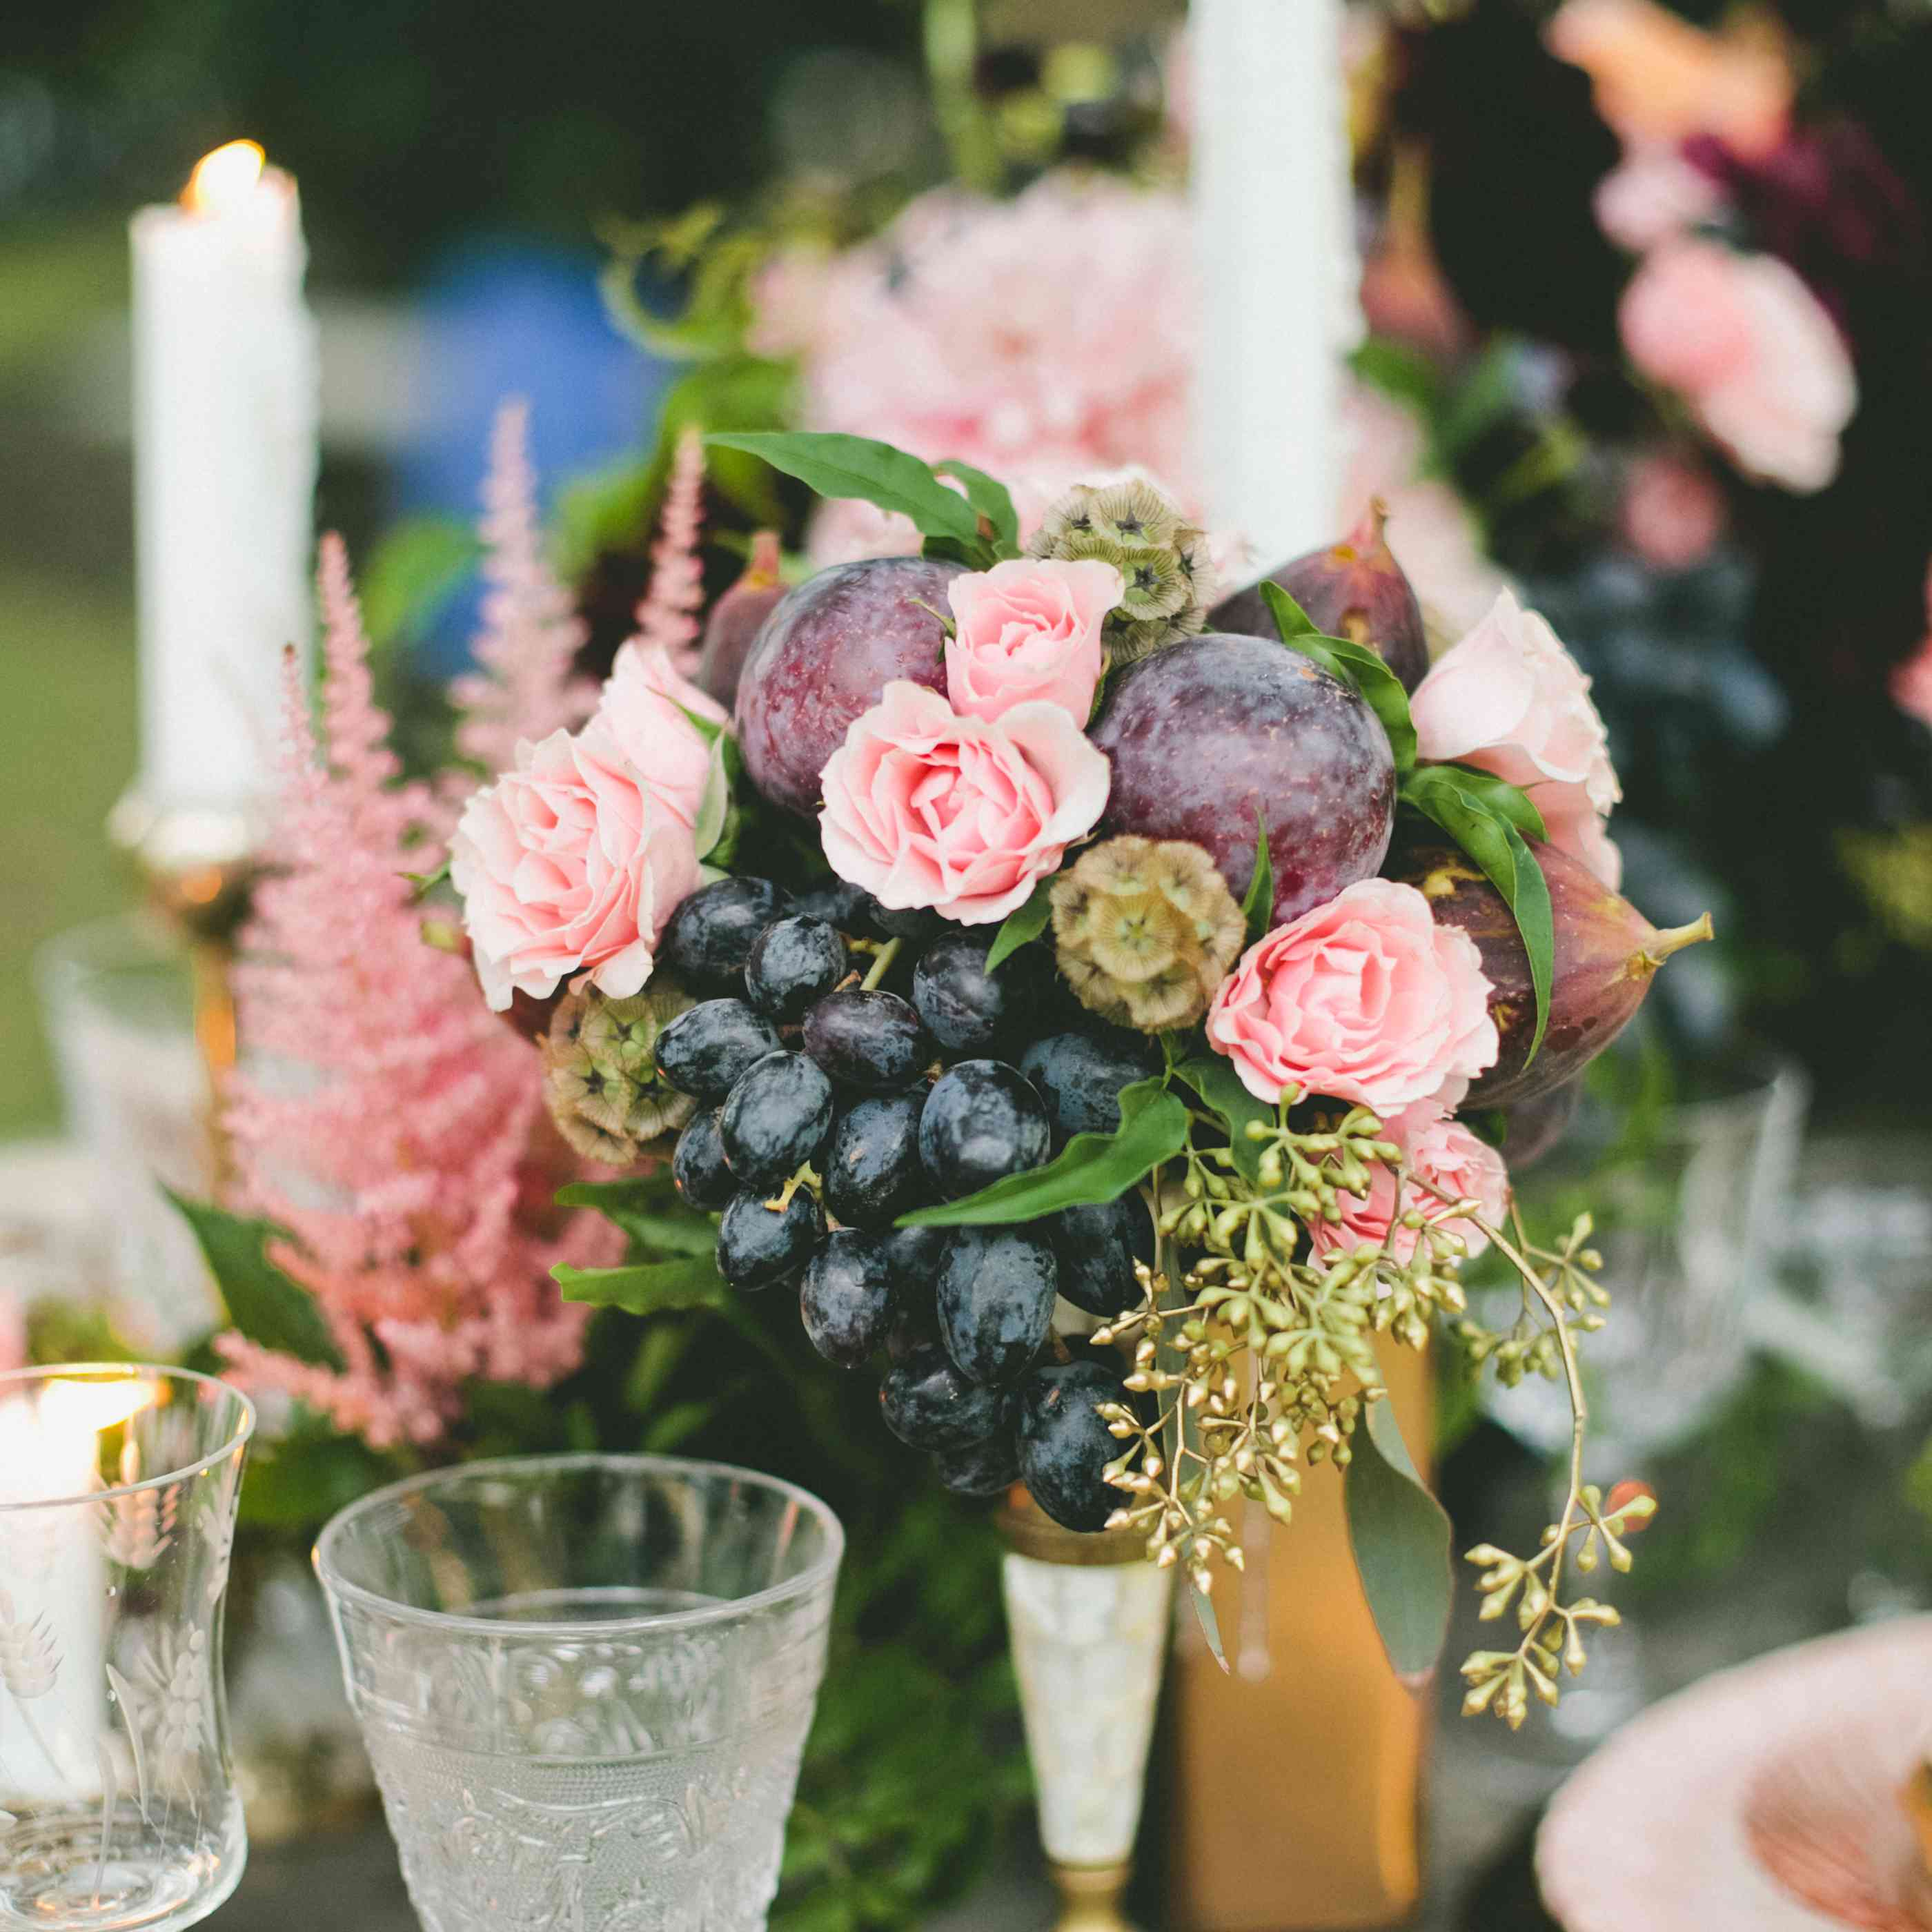 Blackberries and figs in a centerpiece